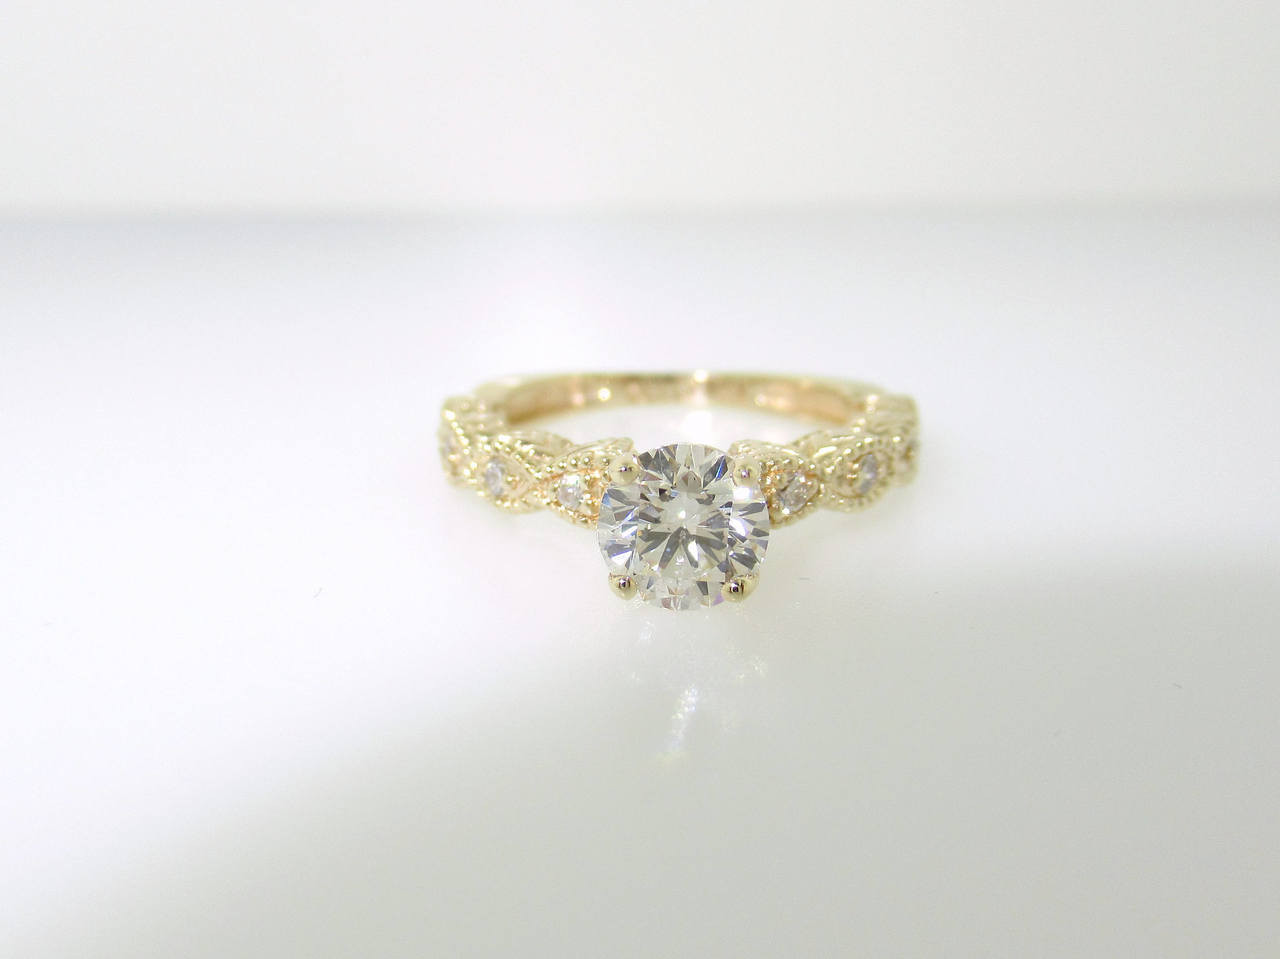 a25729cbd45b2 Vintage Engagement Ring Yellow Gold, Diamond Engagement Ring, Bridal Ring,  Vintage Wedding Ring 0.60 Carat GIA Certified Unique Handmade